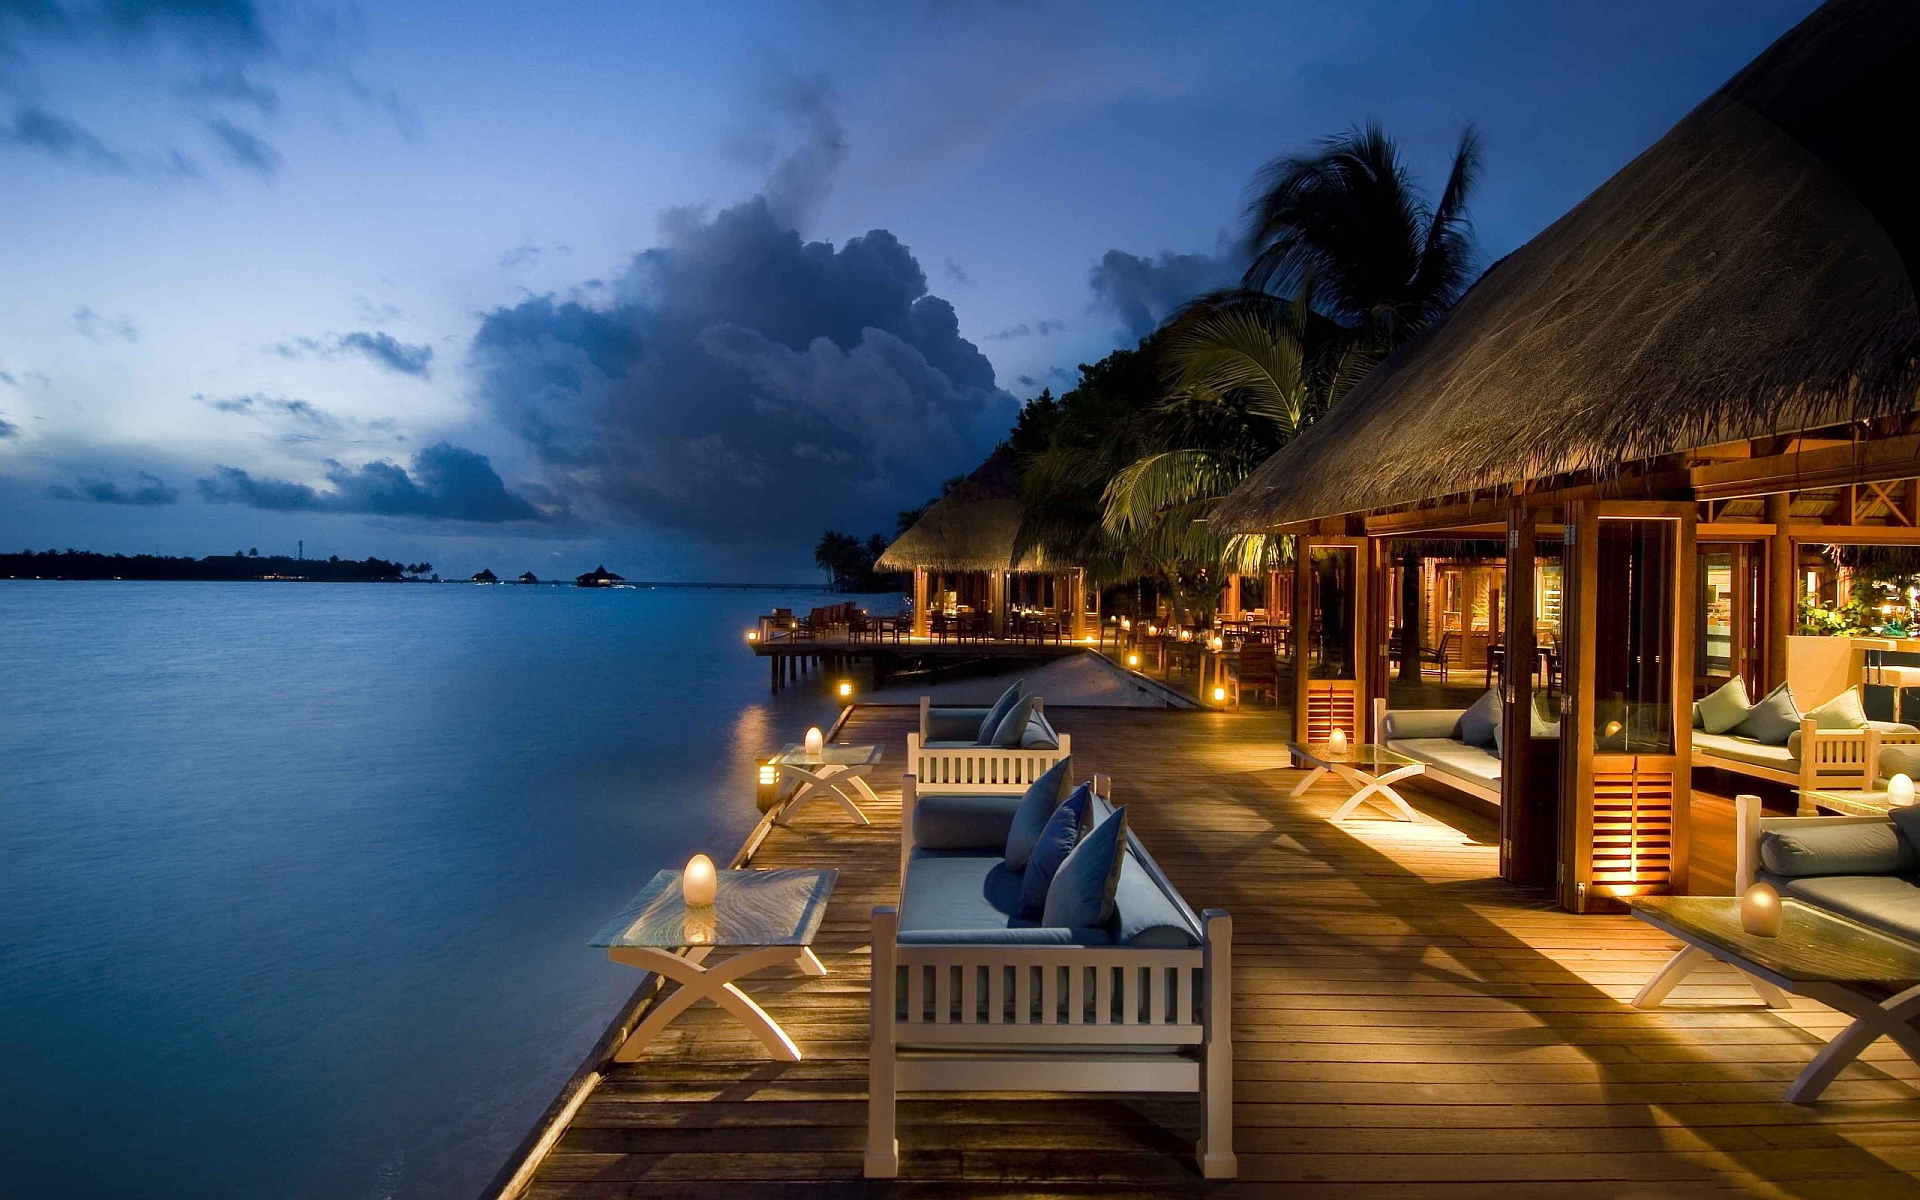 Relaxing resort evening